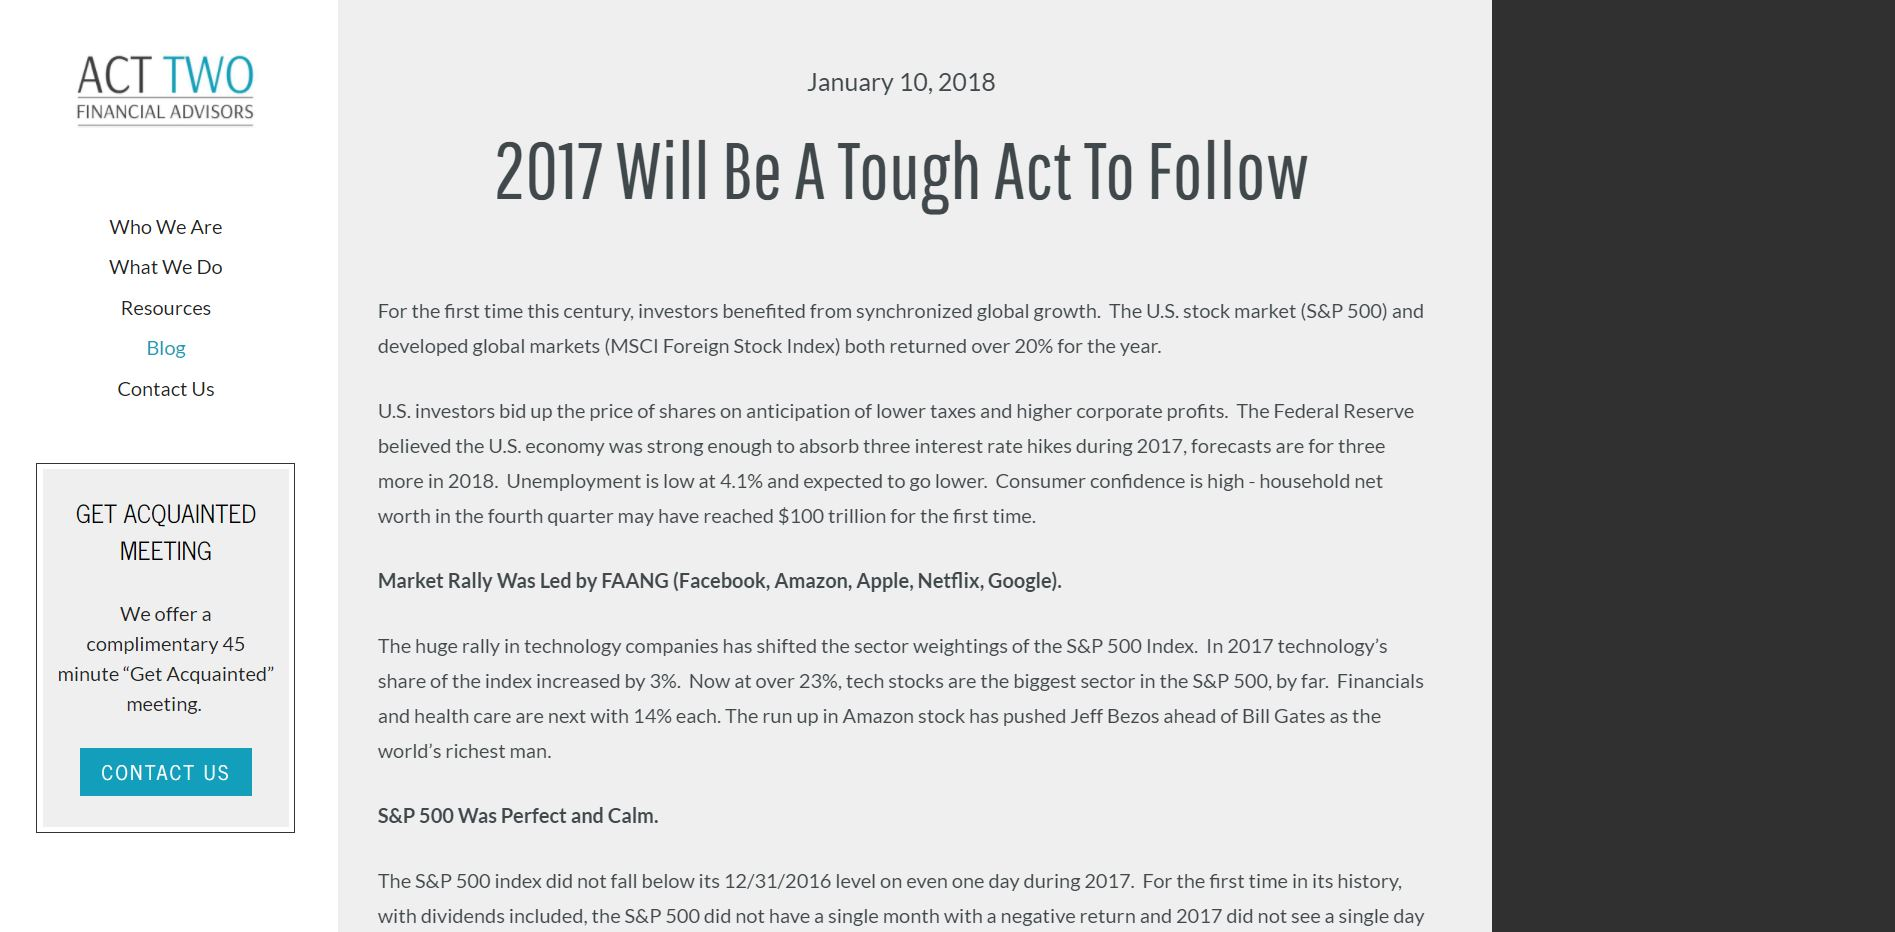 act two financial advisors blog